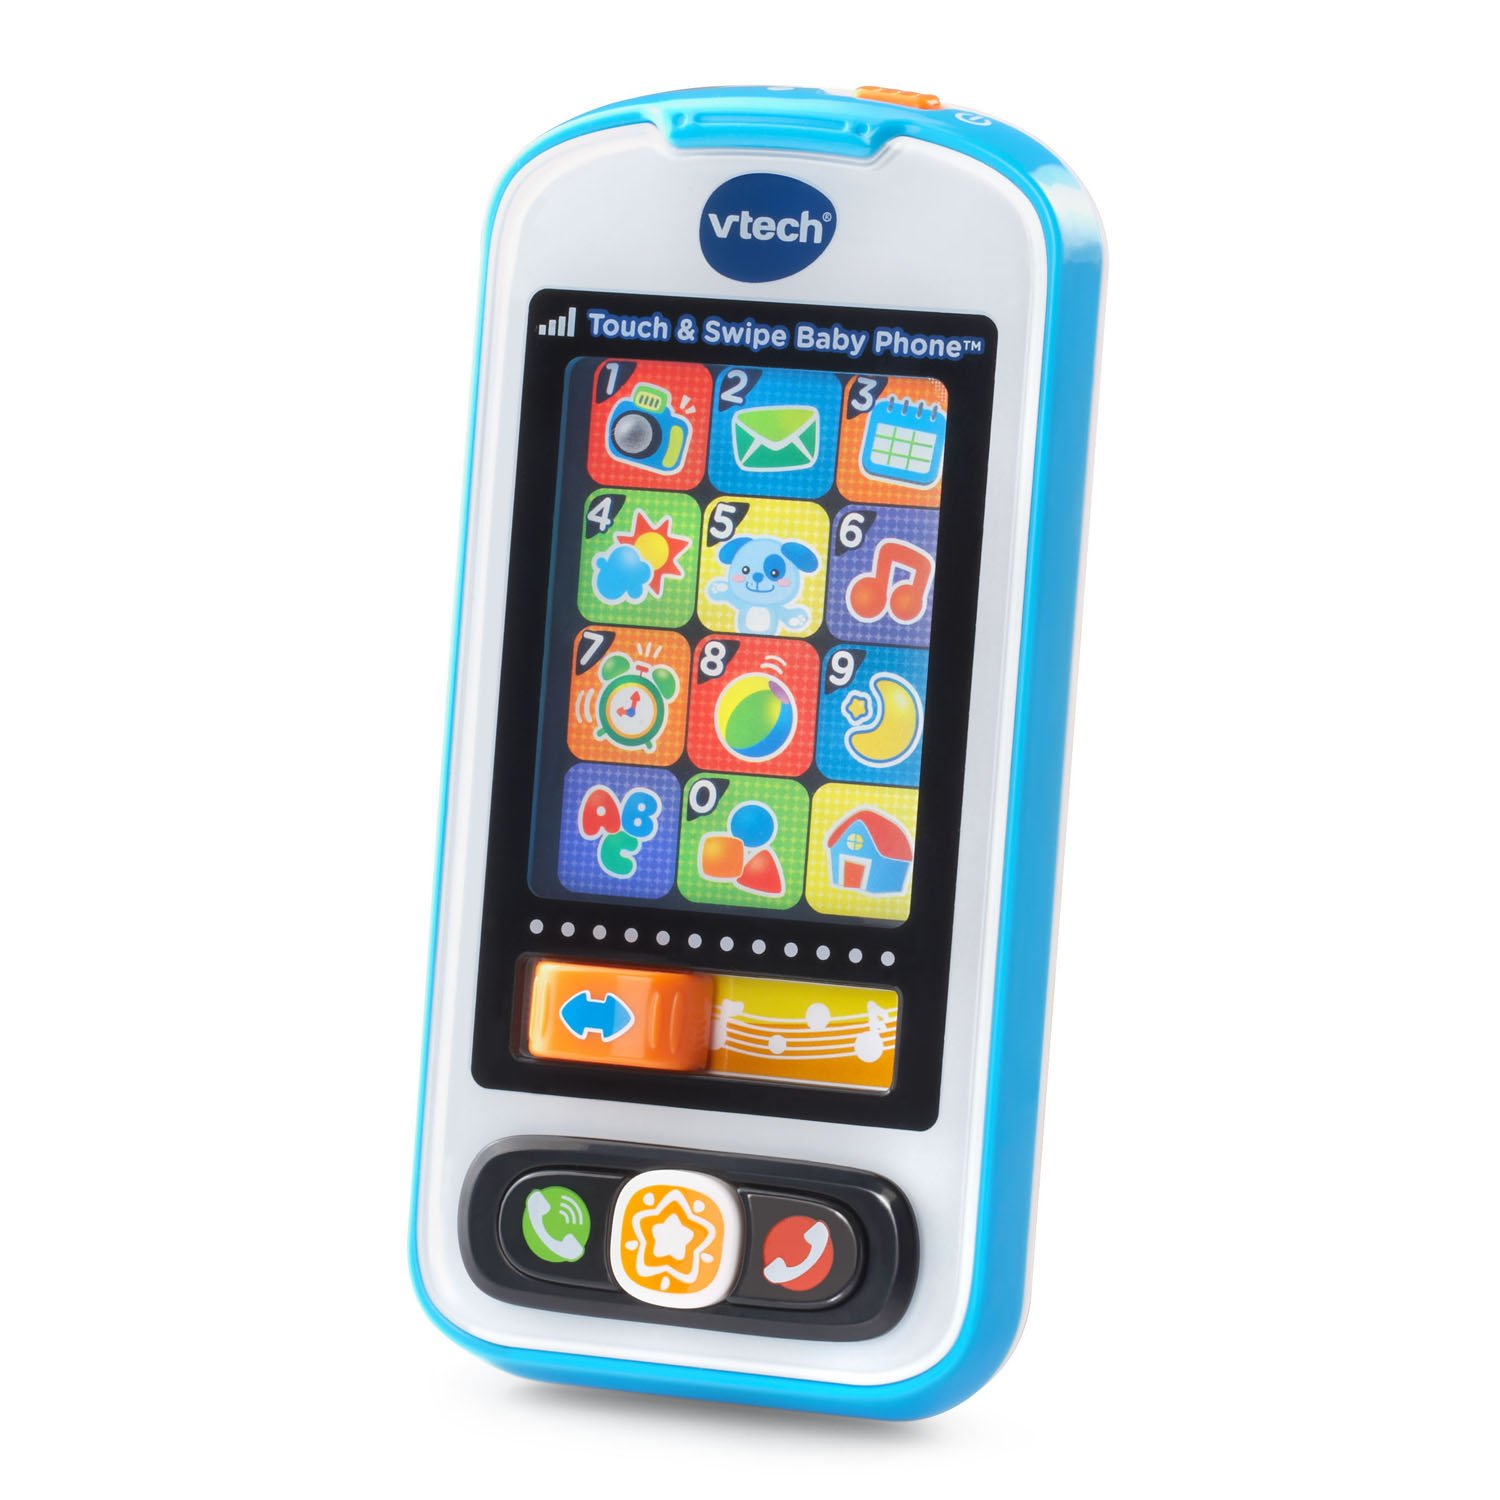 VTech Touch and Swipe Baby Phone, Blue by VTech (Image #1)